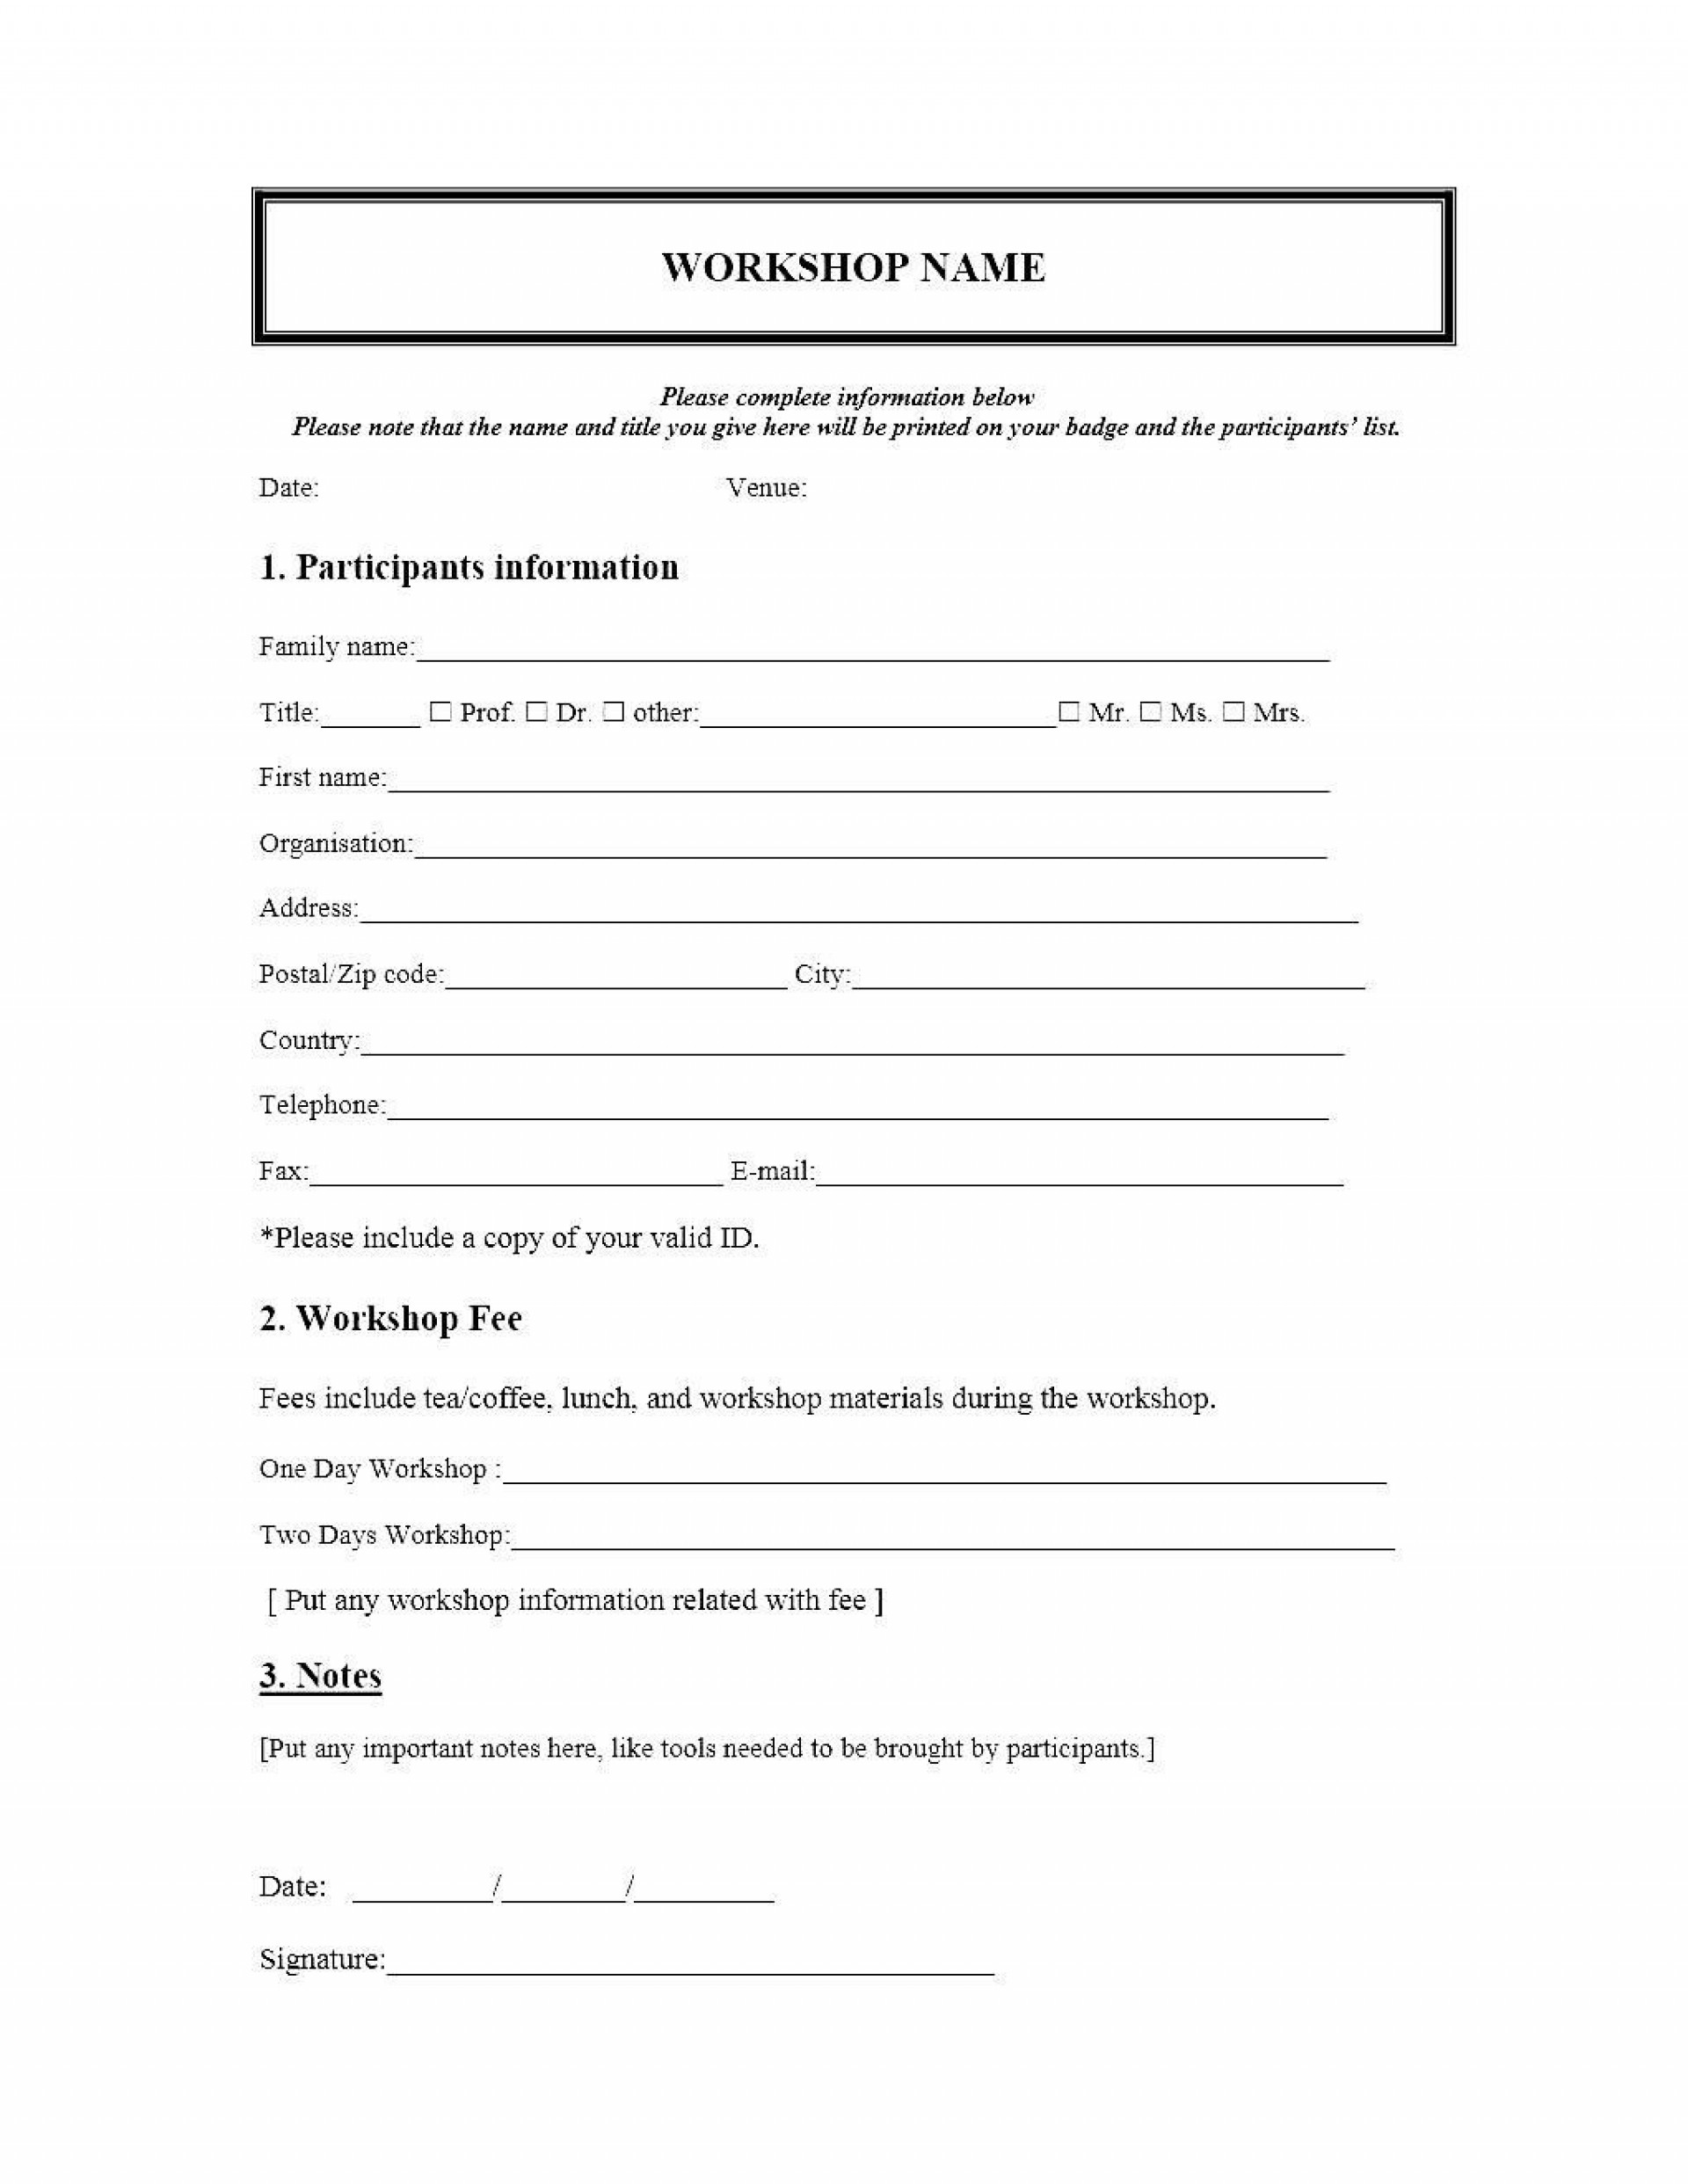 007 Remarkable New Customer Application Form Template High Def  Account Uk Credit Australia Request1920